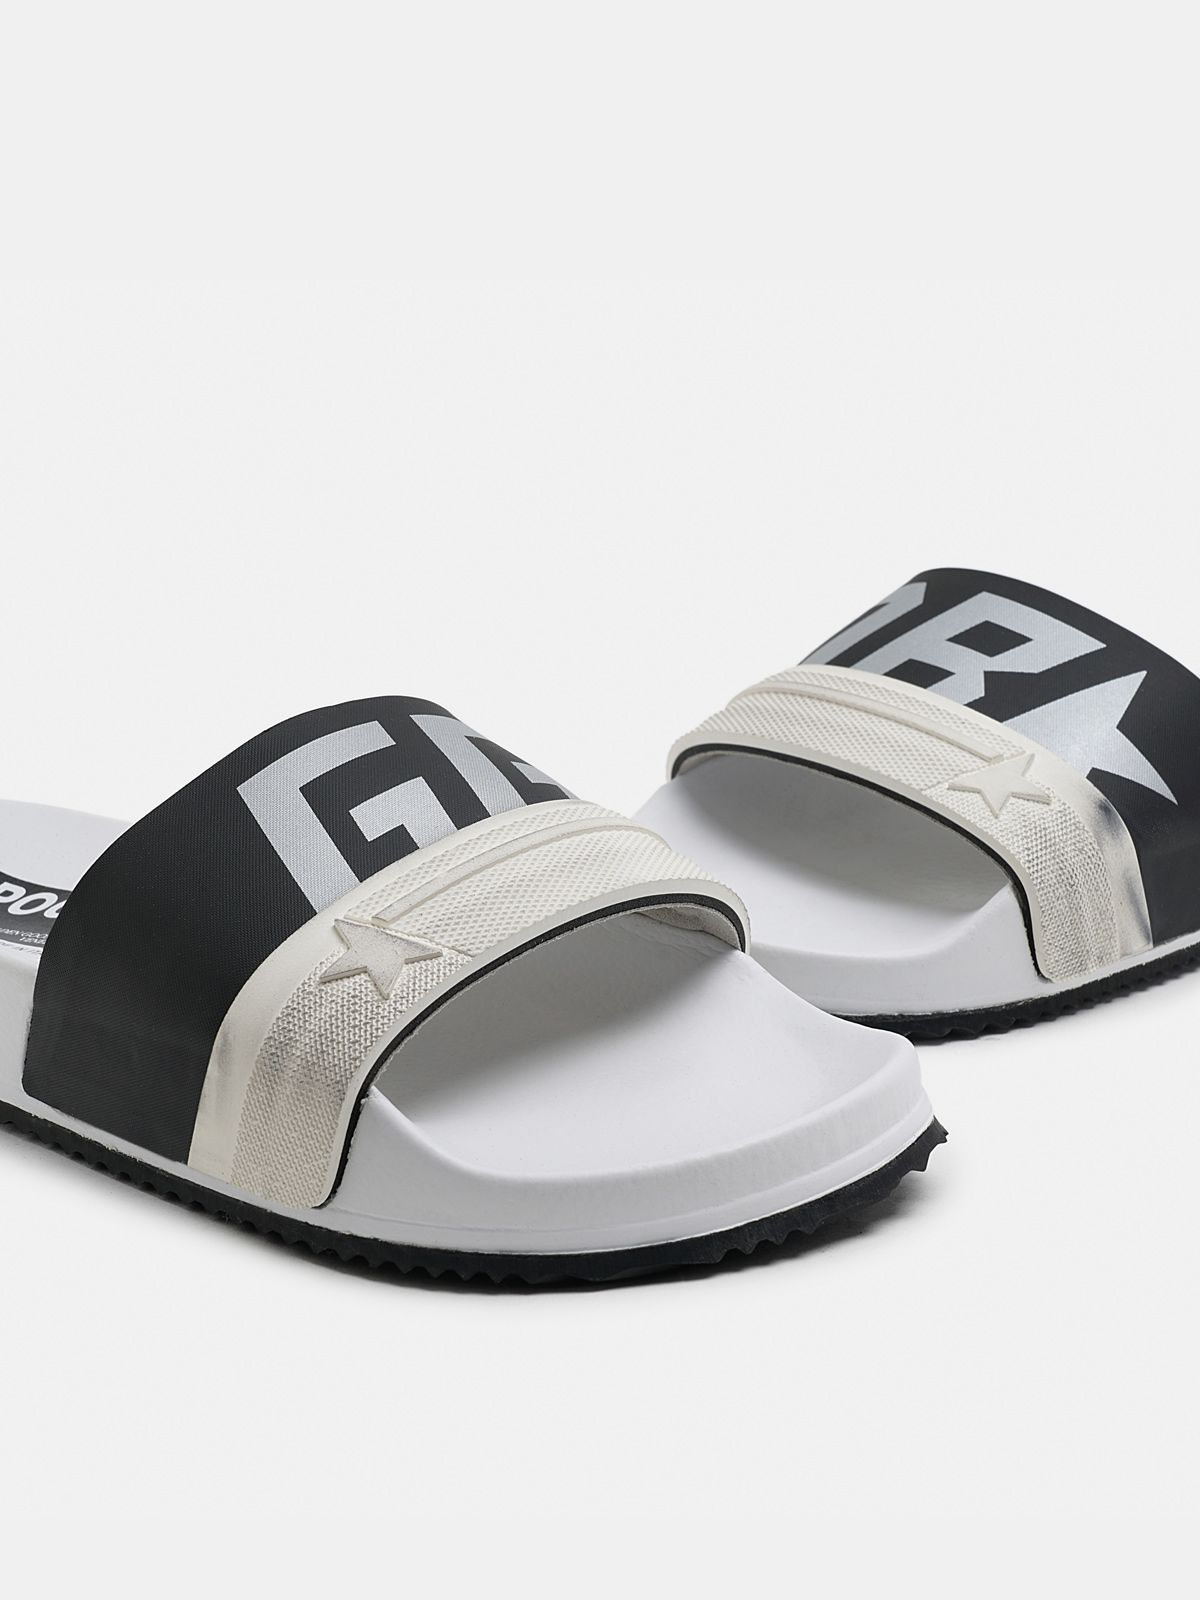 Golden Goose - Women's white Poolstars with two-colour black strap in